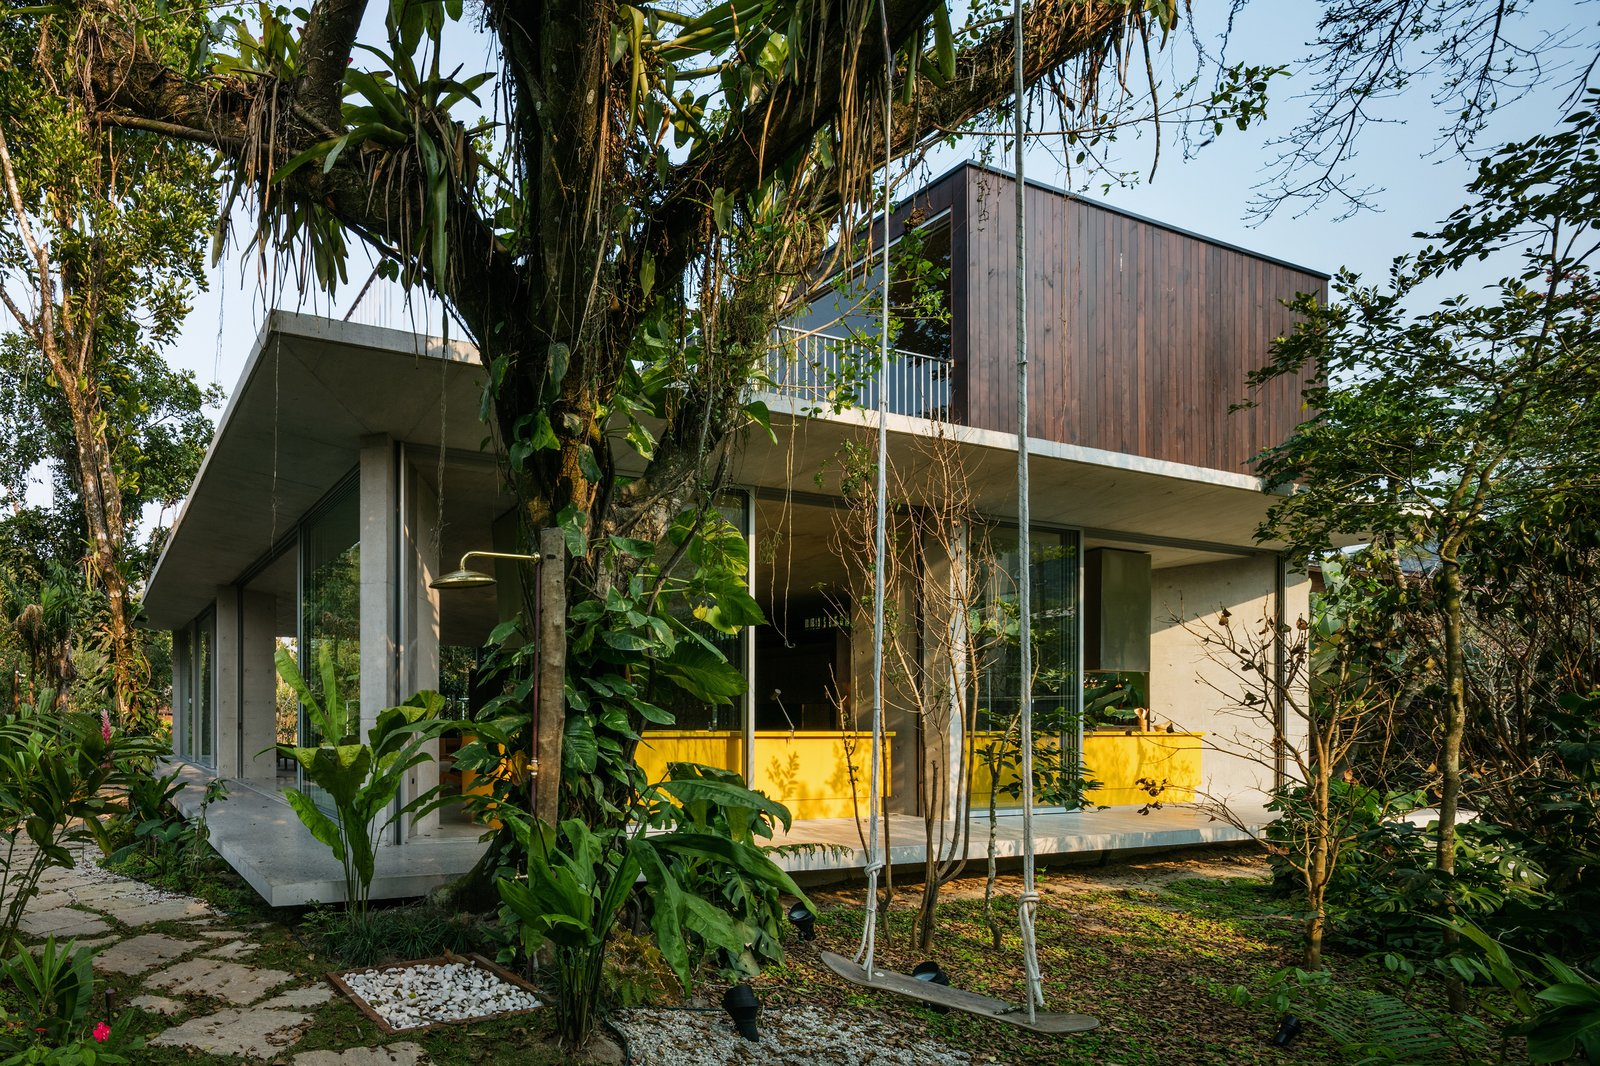 Residência Itamambuca - contemporary house in the jungle - exterior